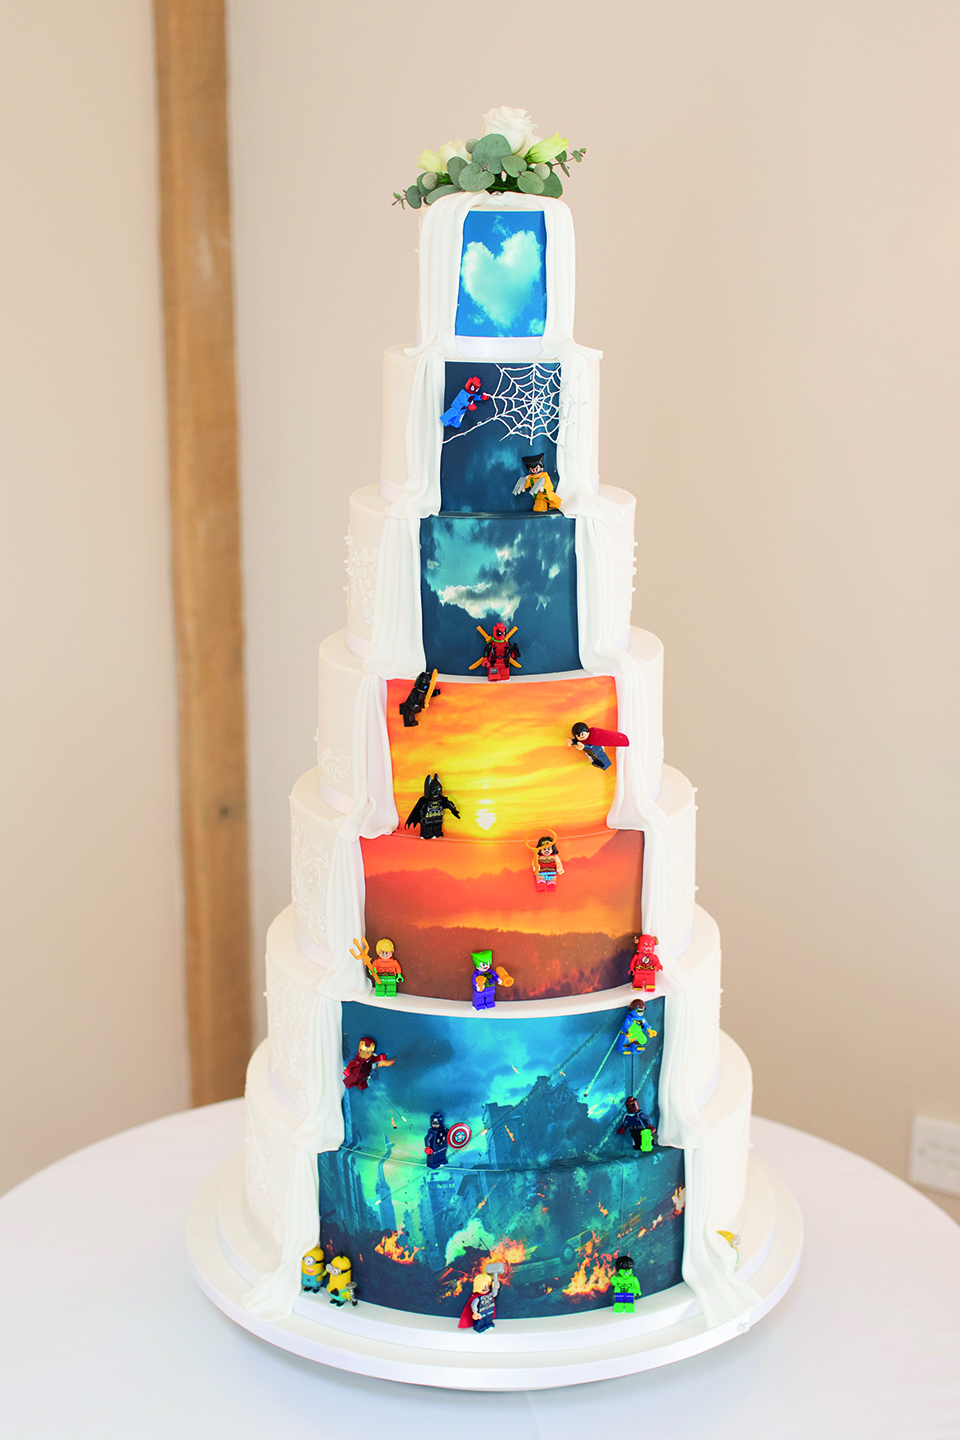 A traditional seven-tiered wedding cake has an alternative twist with a superhero unveiling at the back